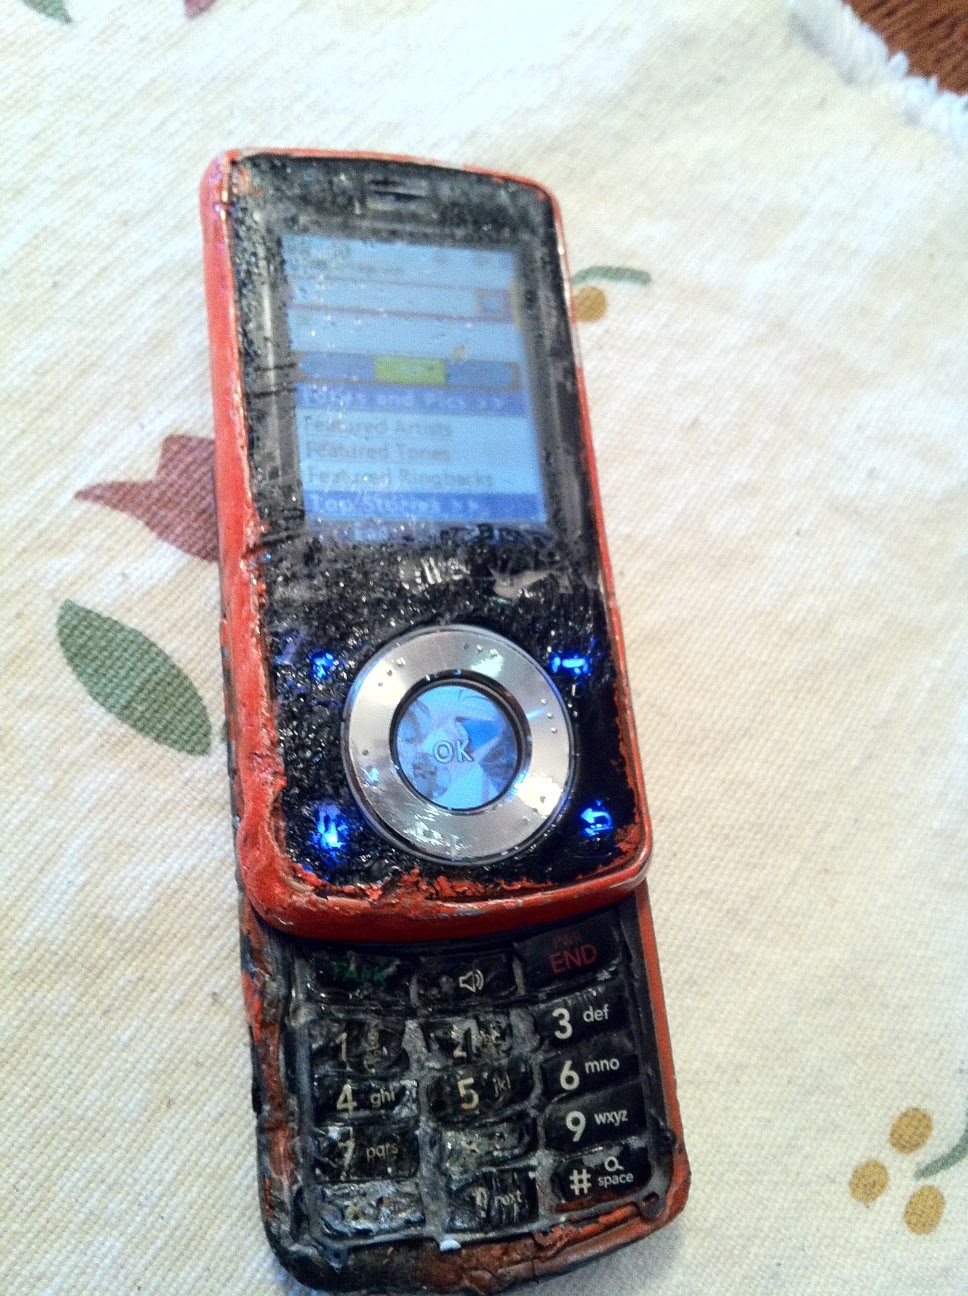 ... Iu0027d Have A Good Excuse Why I Didnu0027t Return Any Of My Calls In A Timely  Fashion. If Youu0027ve Seen A More Durable Cell Phone, Iu0027d Like To See It.